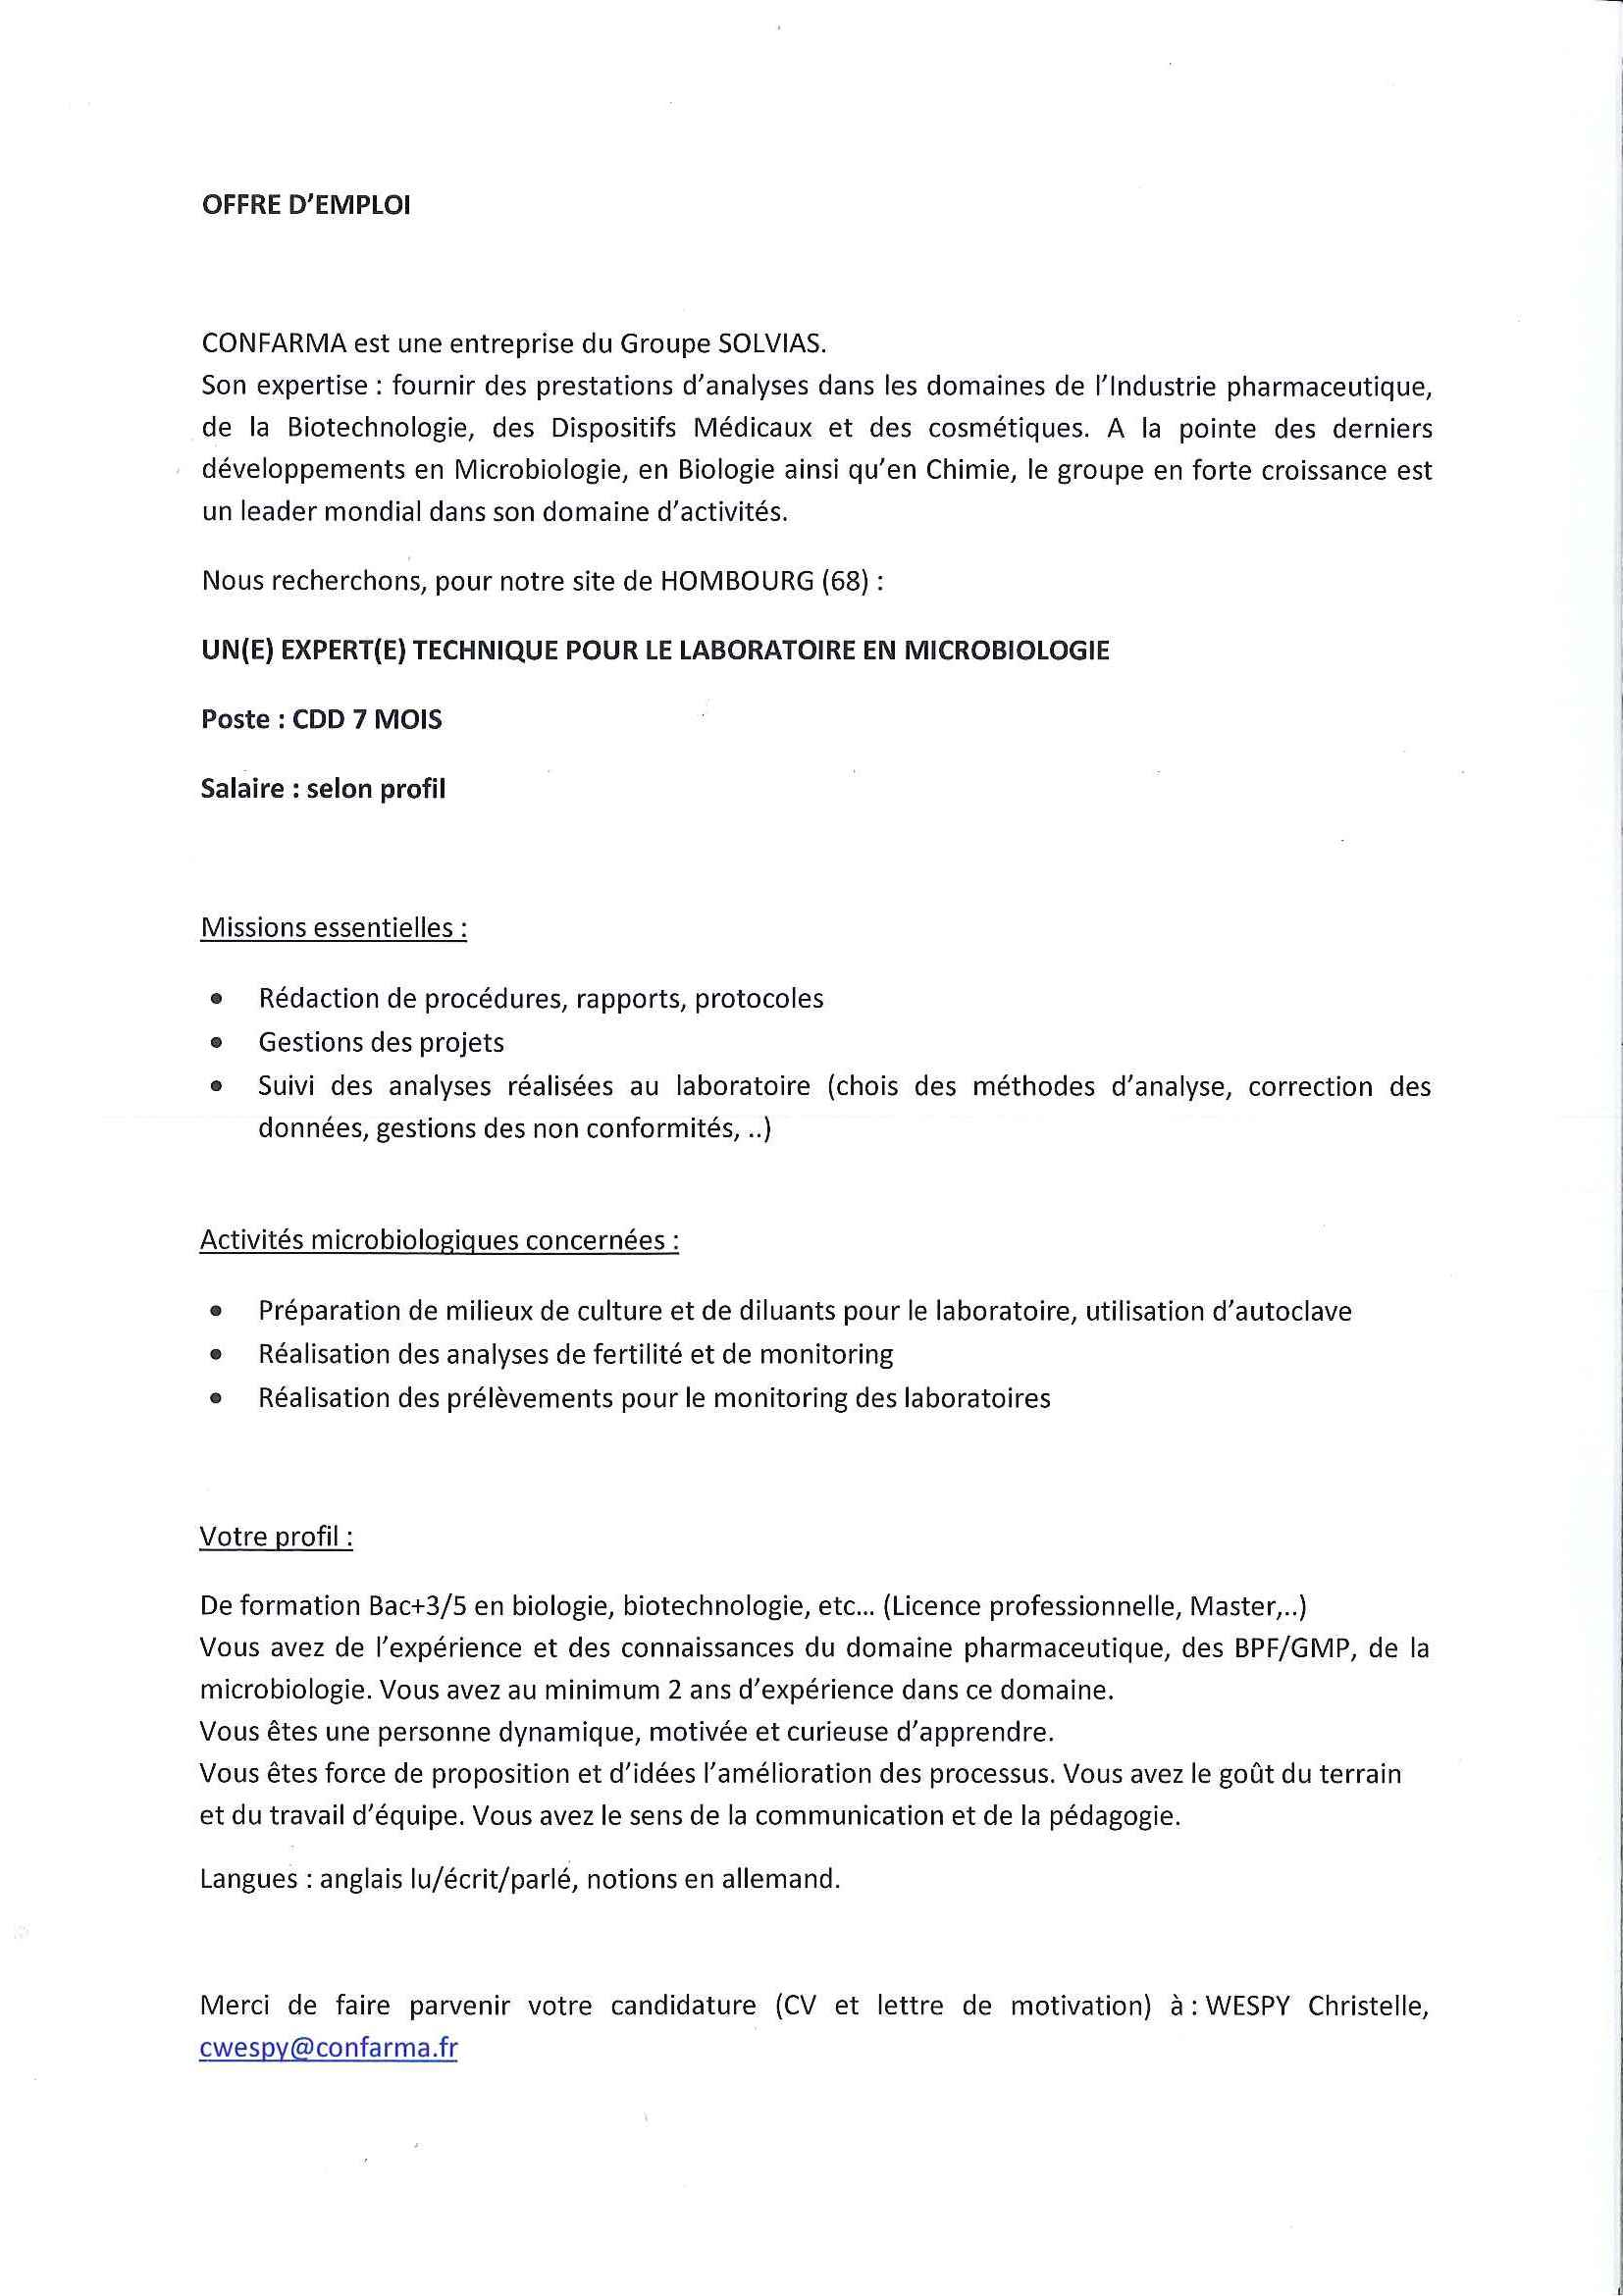 Ebook Lettre De Motivation Technicien De Laboratoire Microbiologie